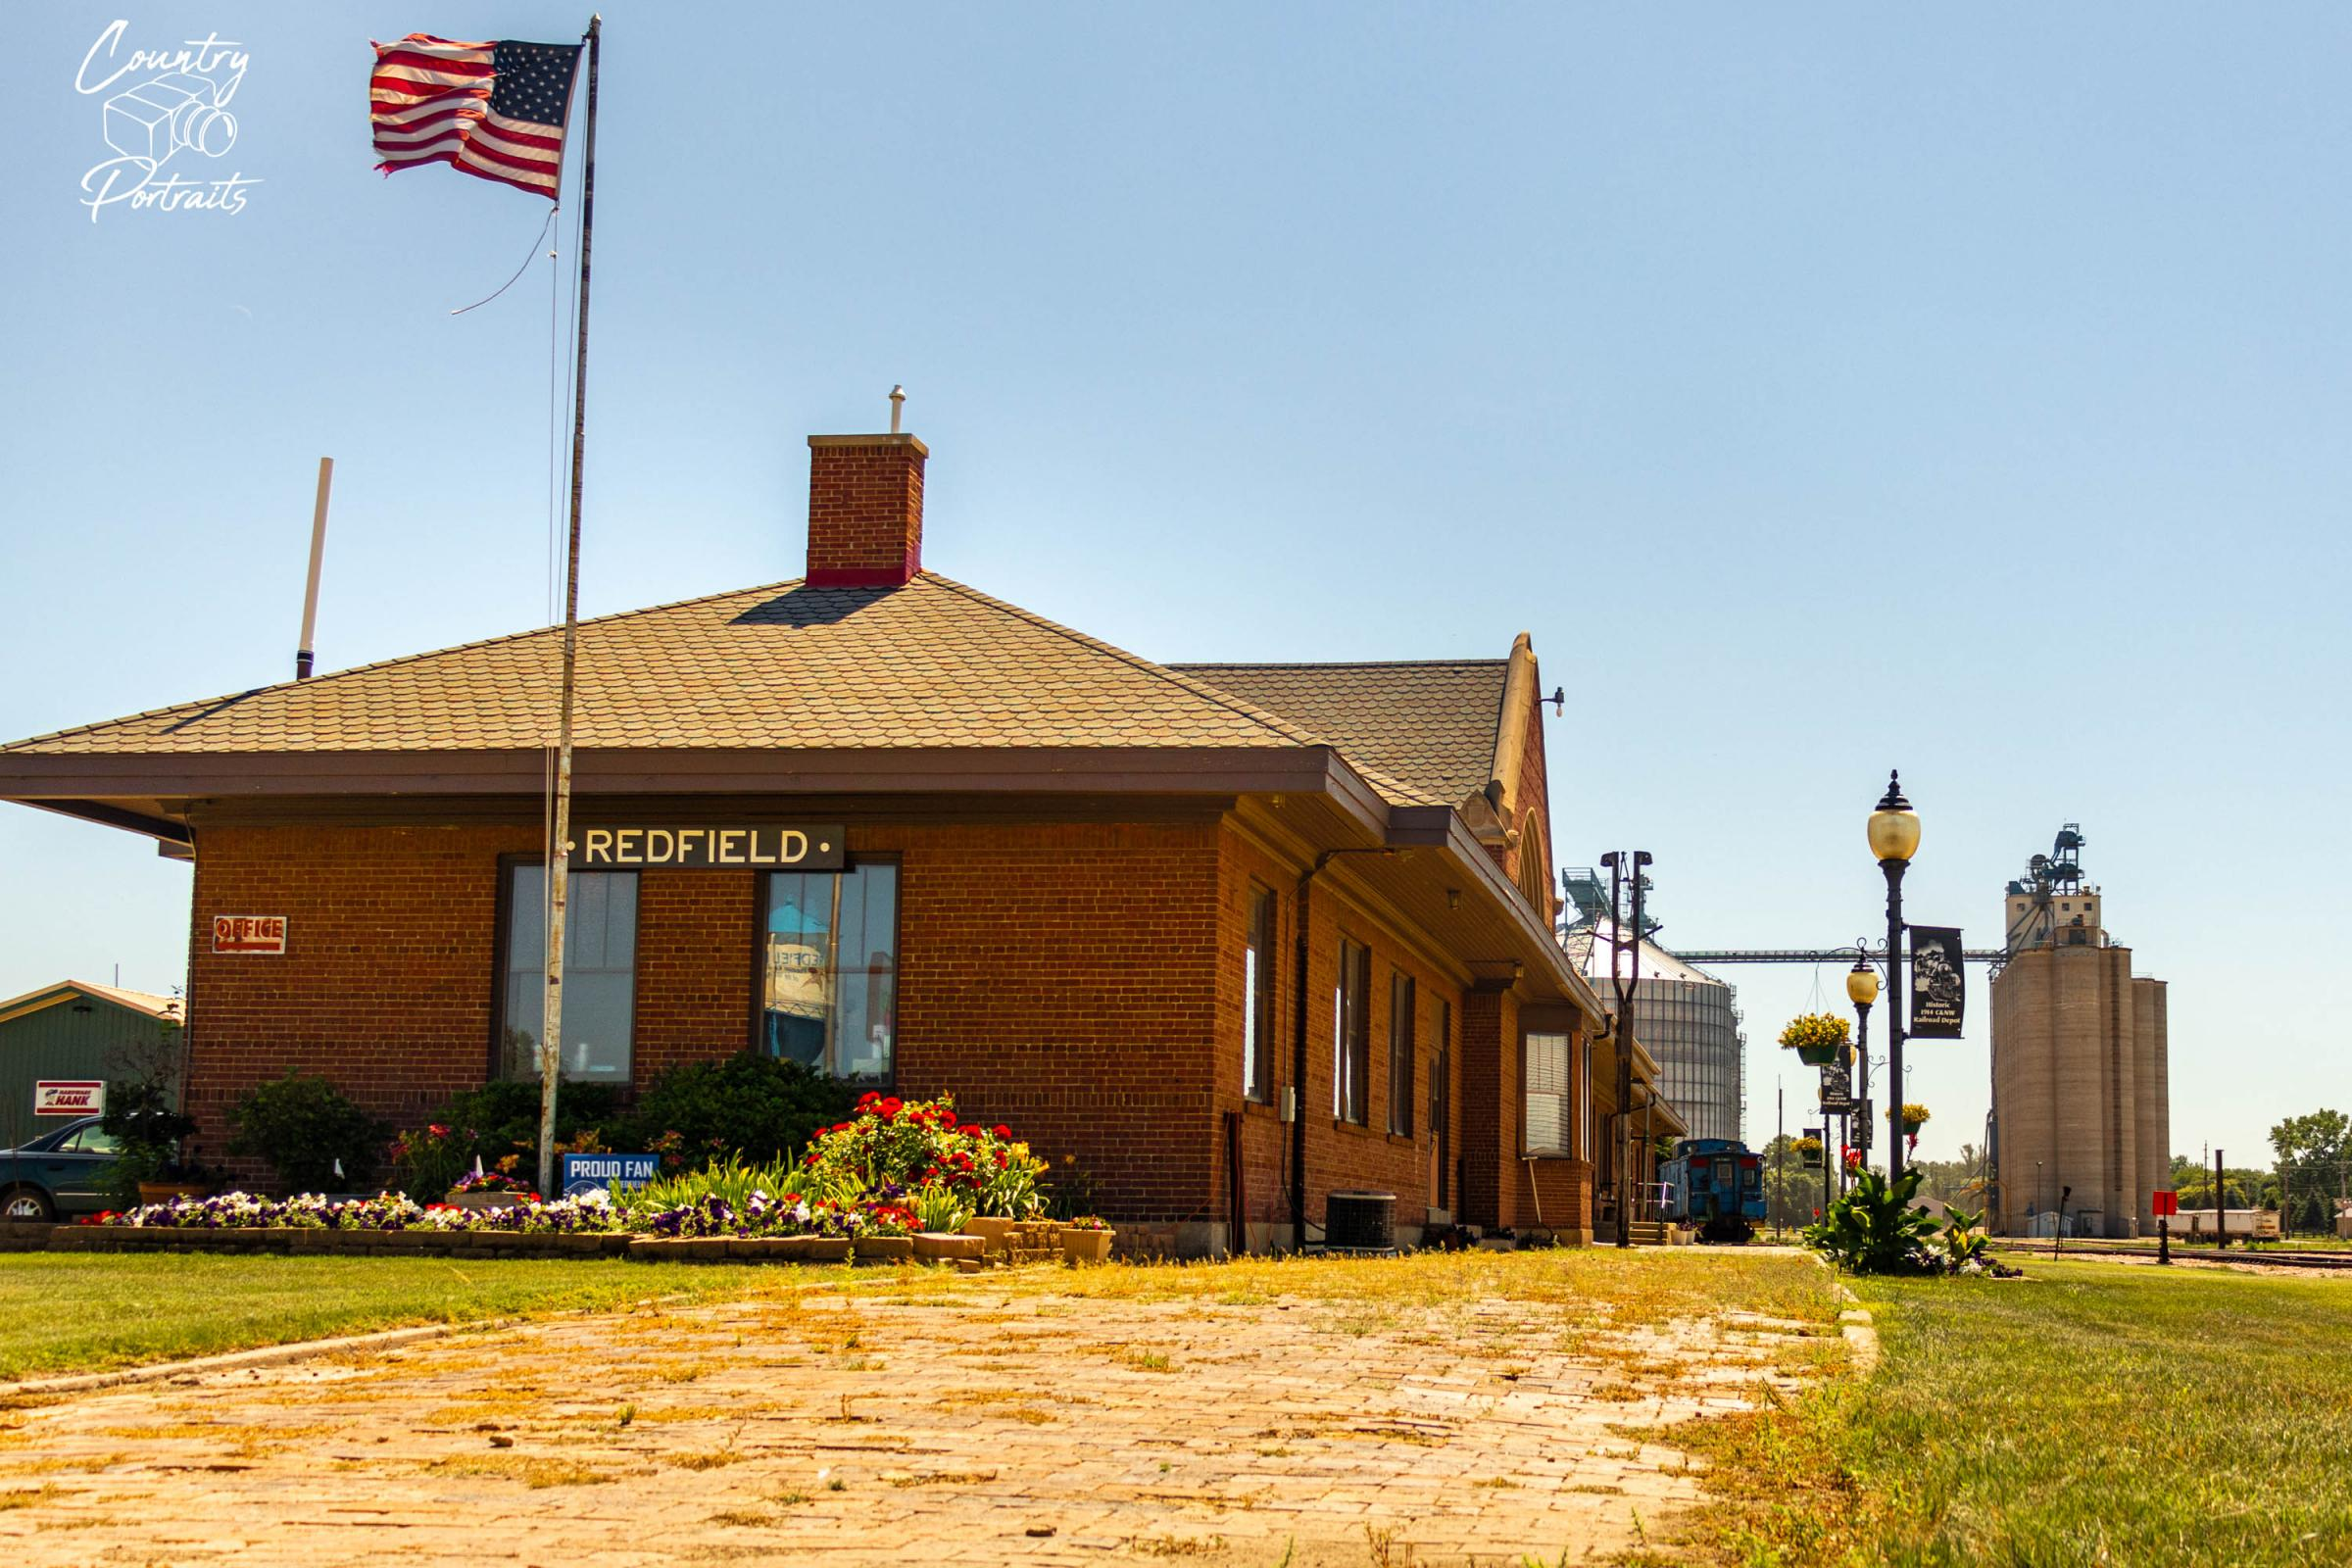 City of Redfield Depot